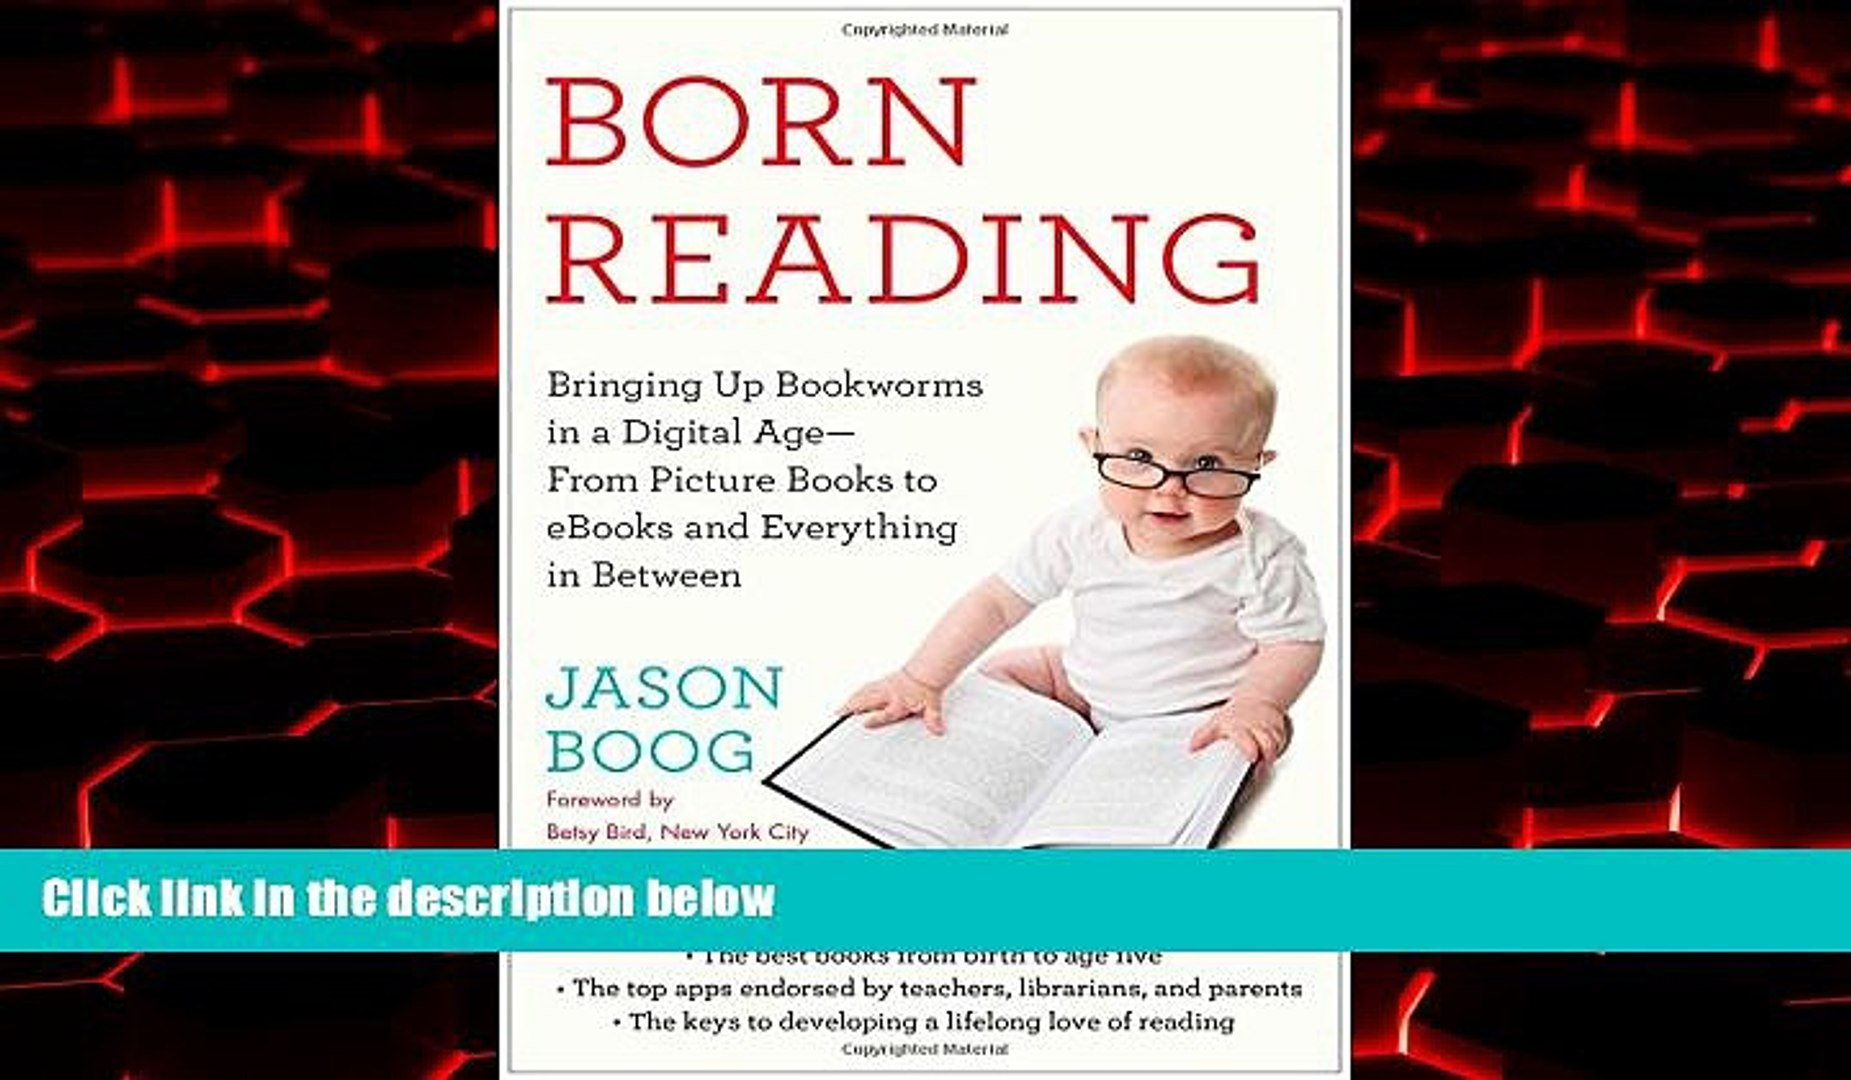 Born Reading Bringing Up Bookworms in a Digital Age From Picture Books to eBooks and Everything in Between